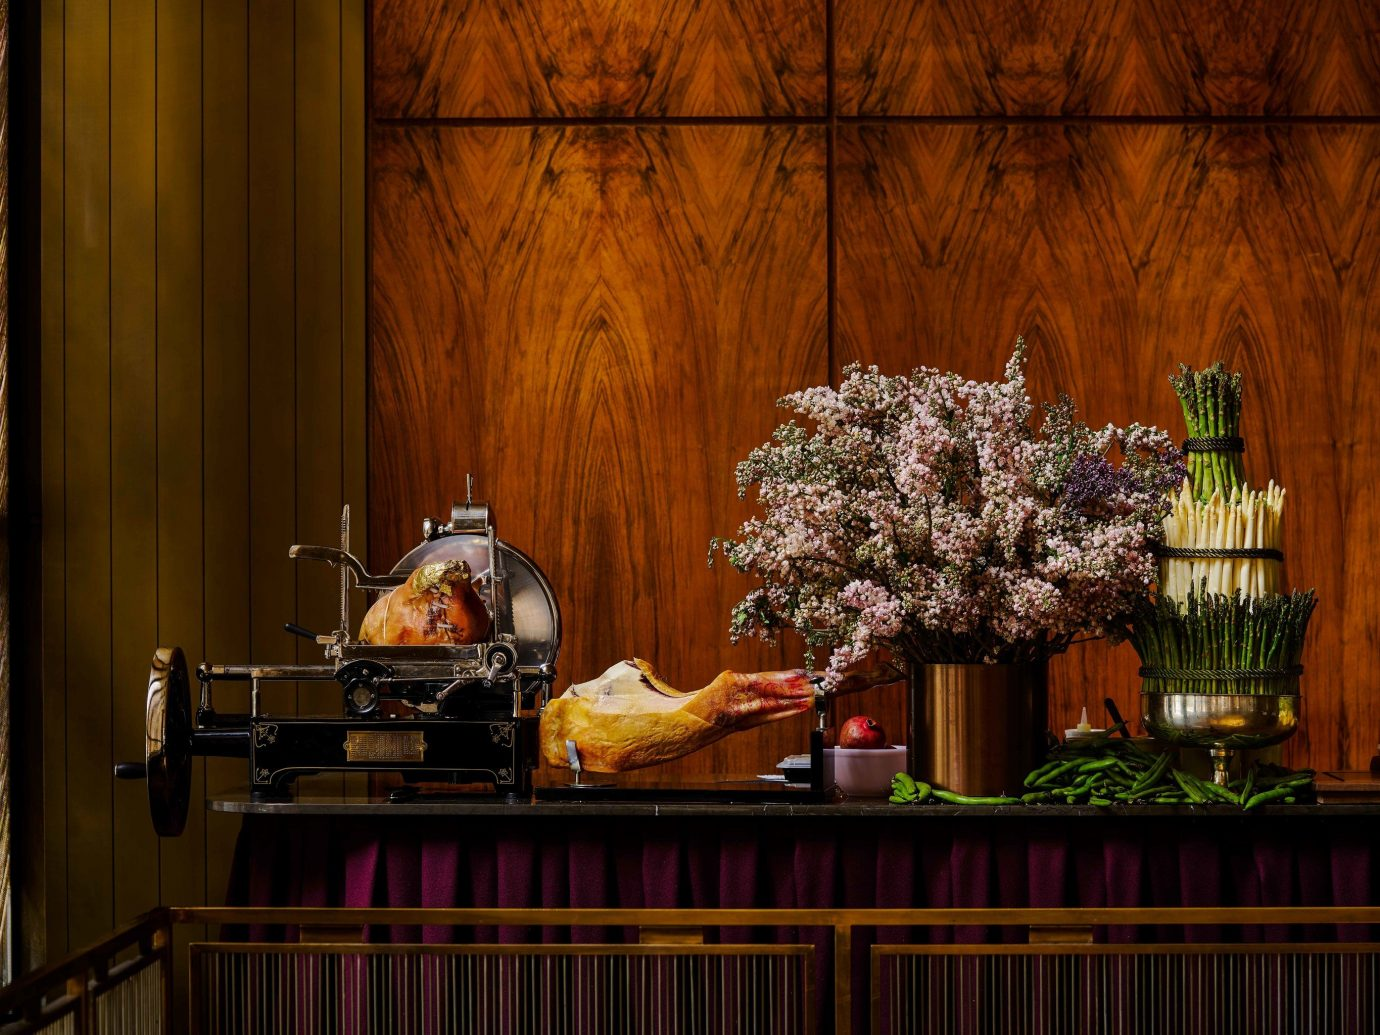 Food + Drink indoor flower still life still life photography interior design night restaurant window altar